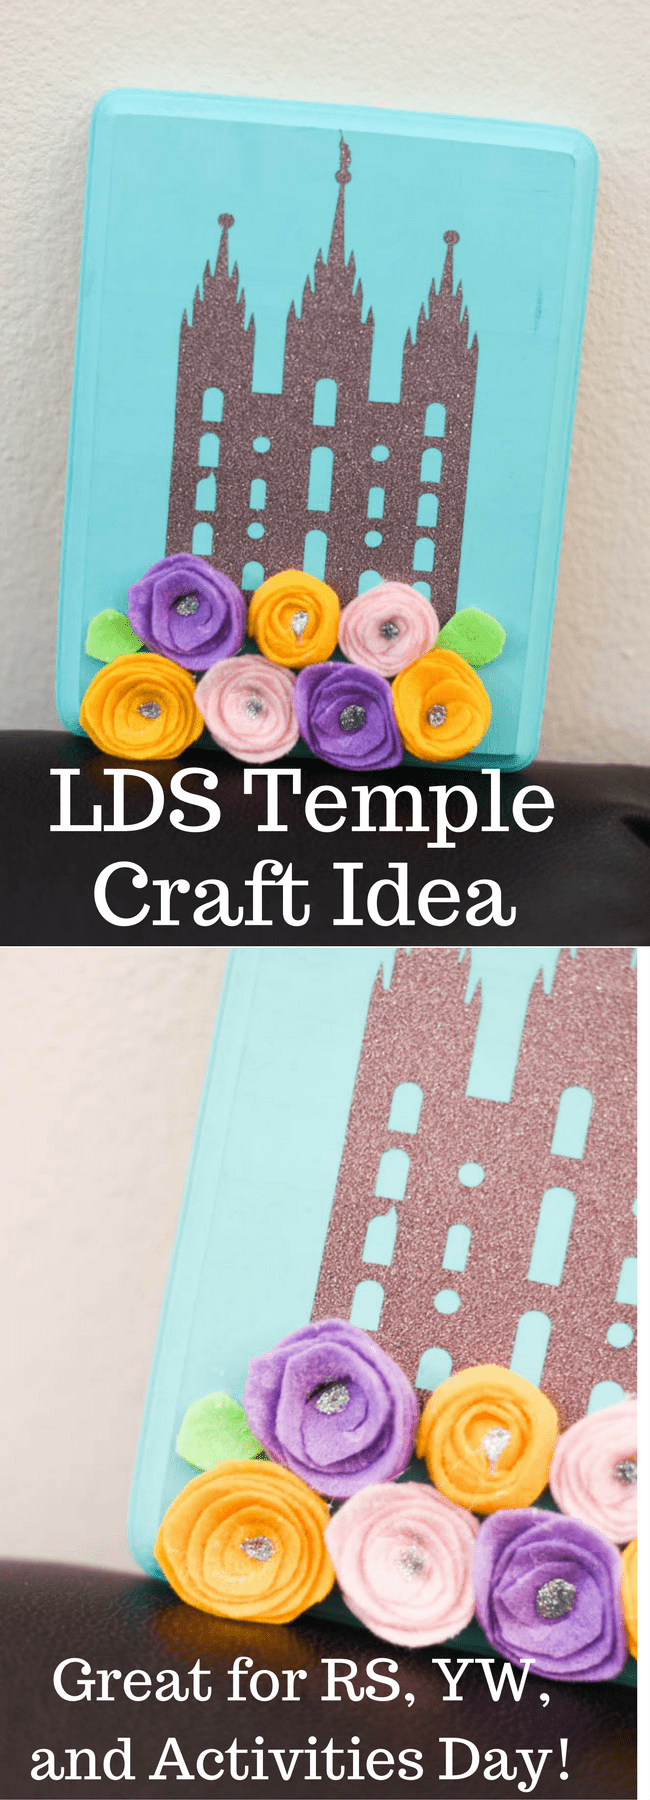 LDS Temples / relief society activities / relief society birthday gifts / young women activities / relief society crafts / lds temple crafts / achievement days / cricut projects / lds craft projects / mormon craft projects via @clarkscondensed